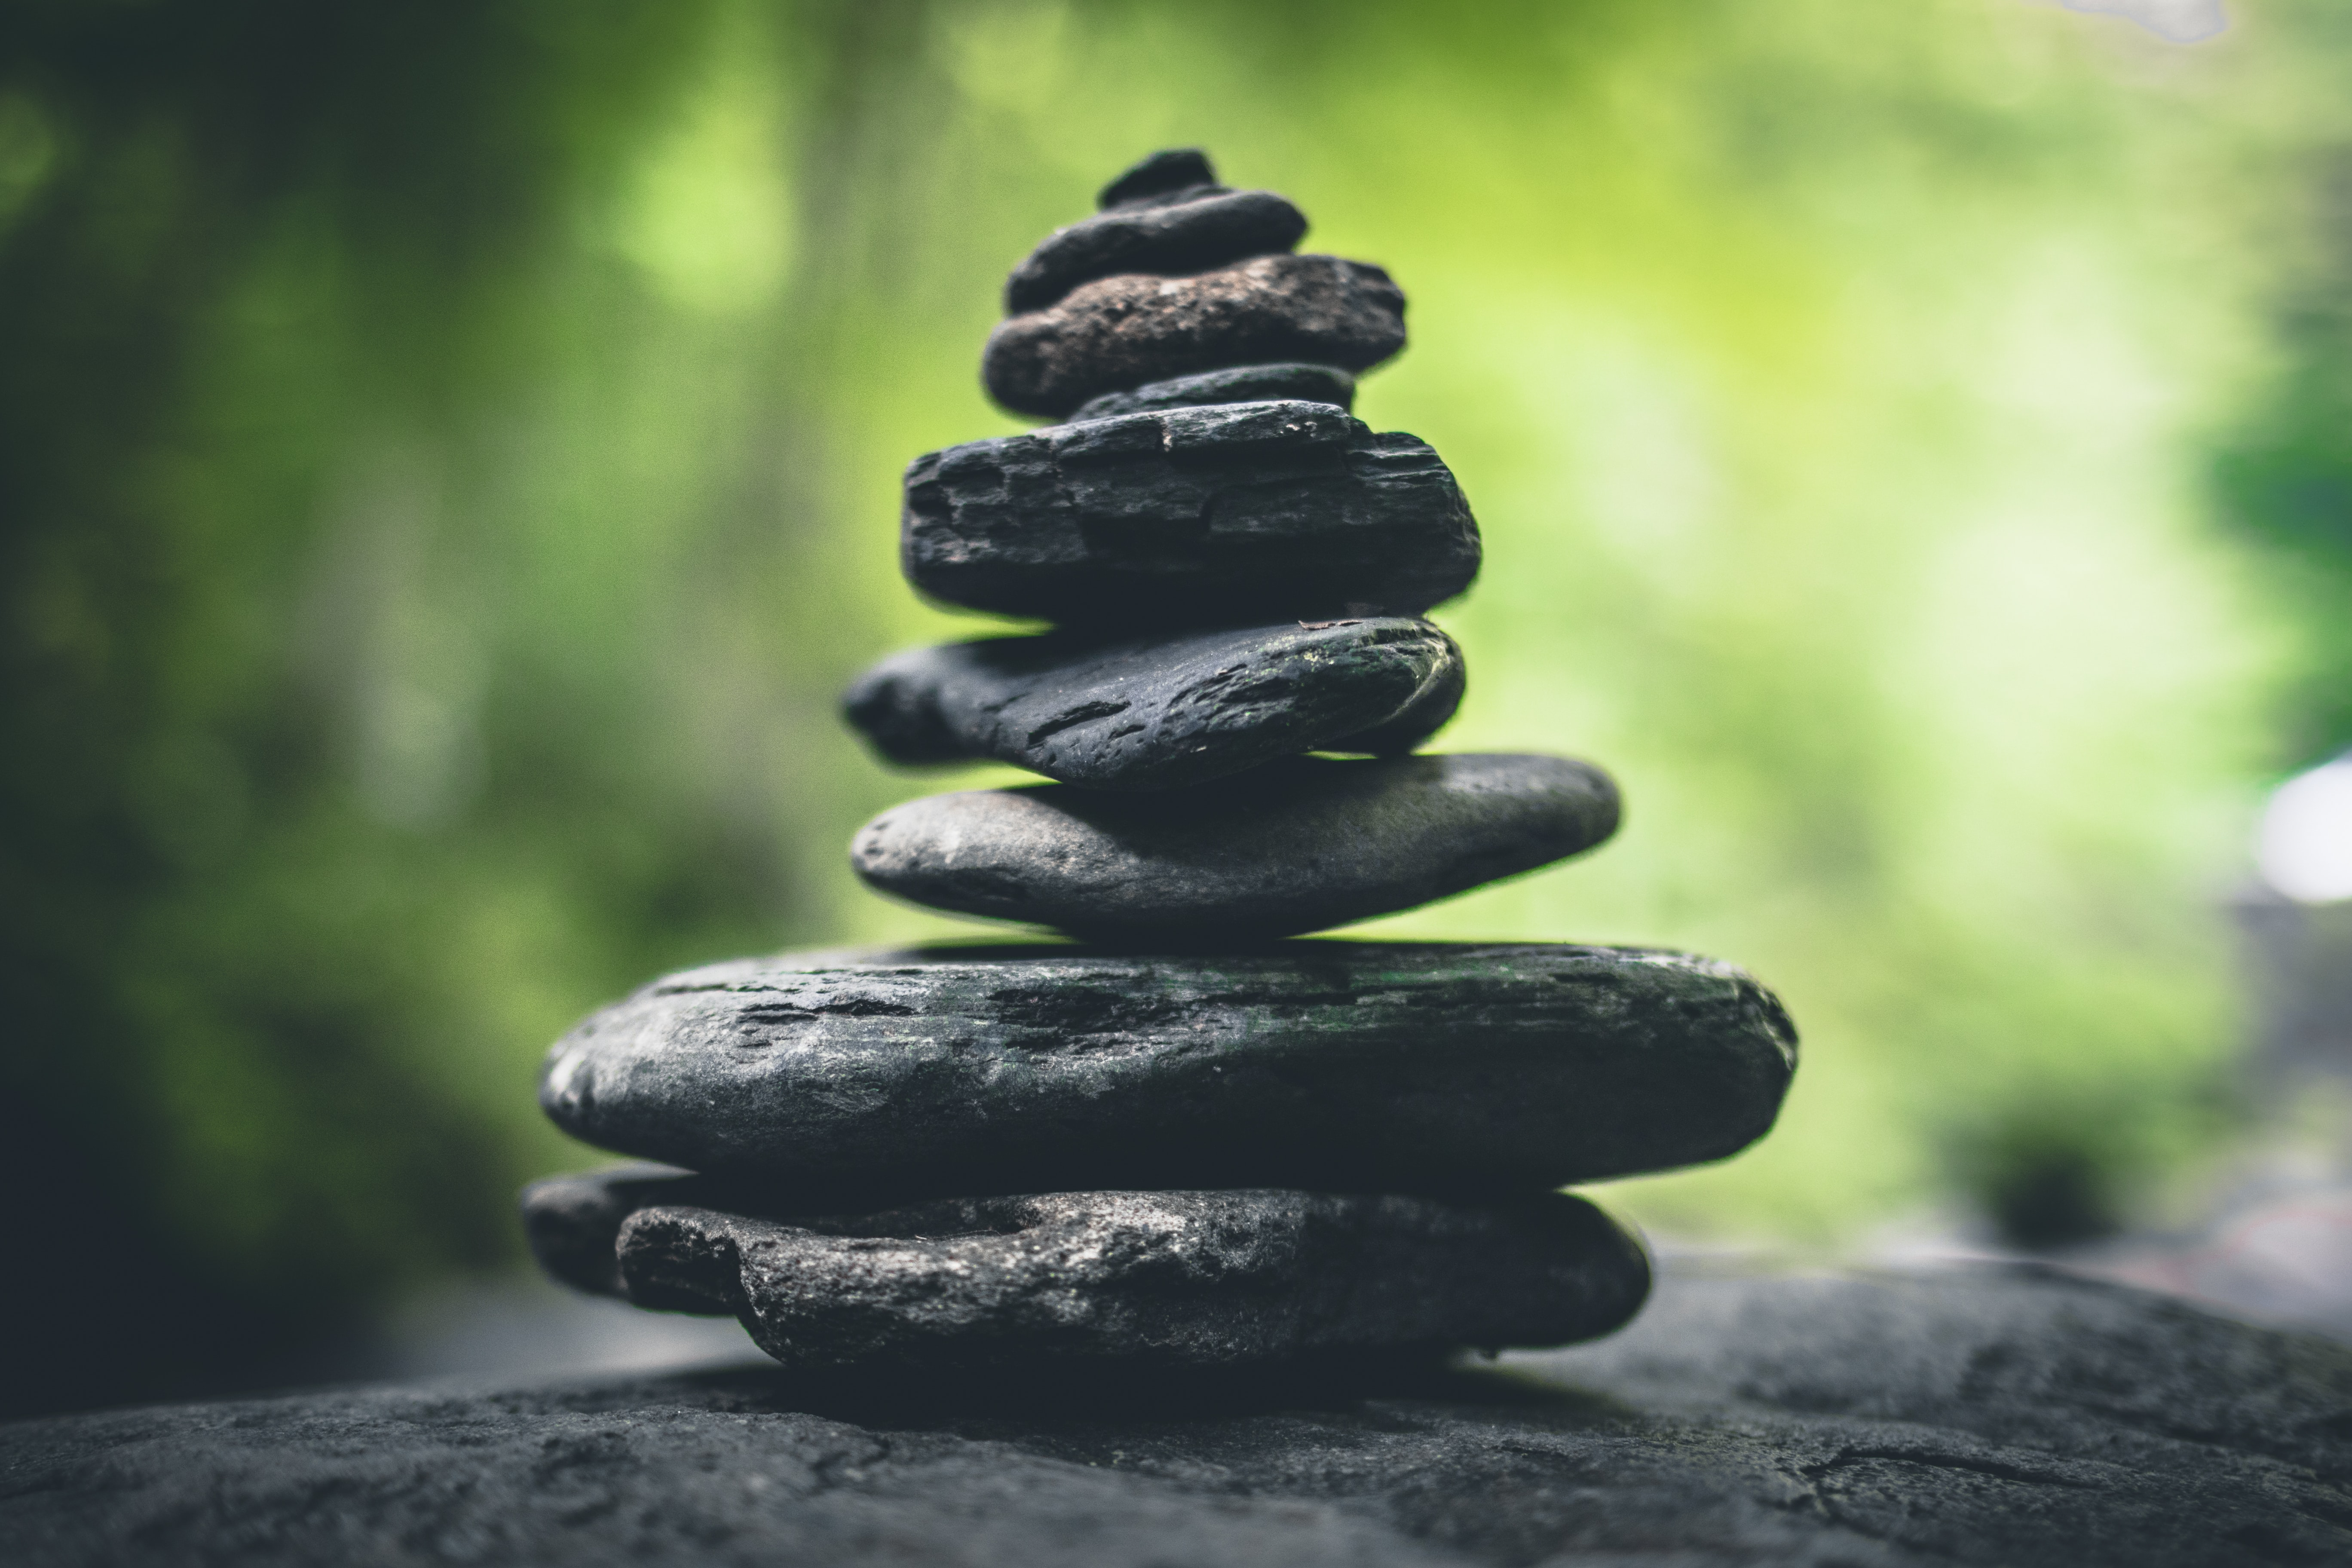 A stack of rocks reflects balance and the importance of value-based remote bonding.